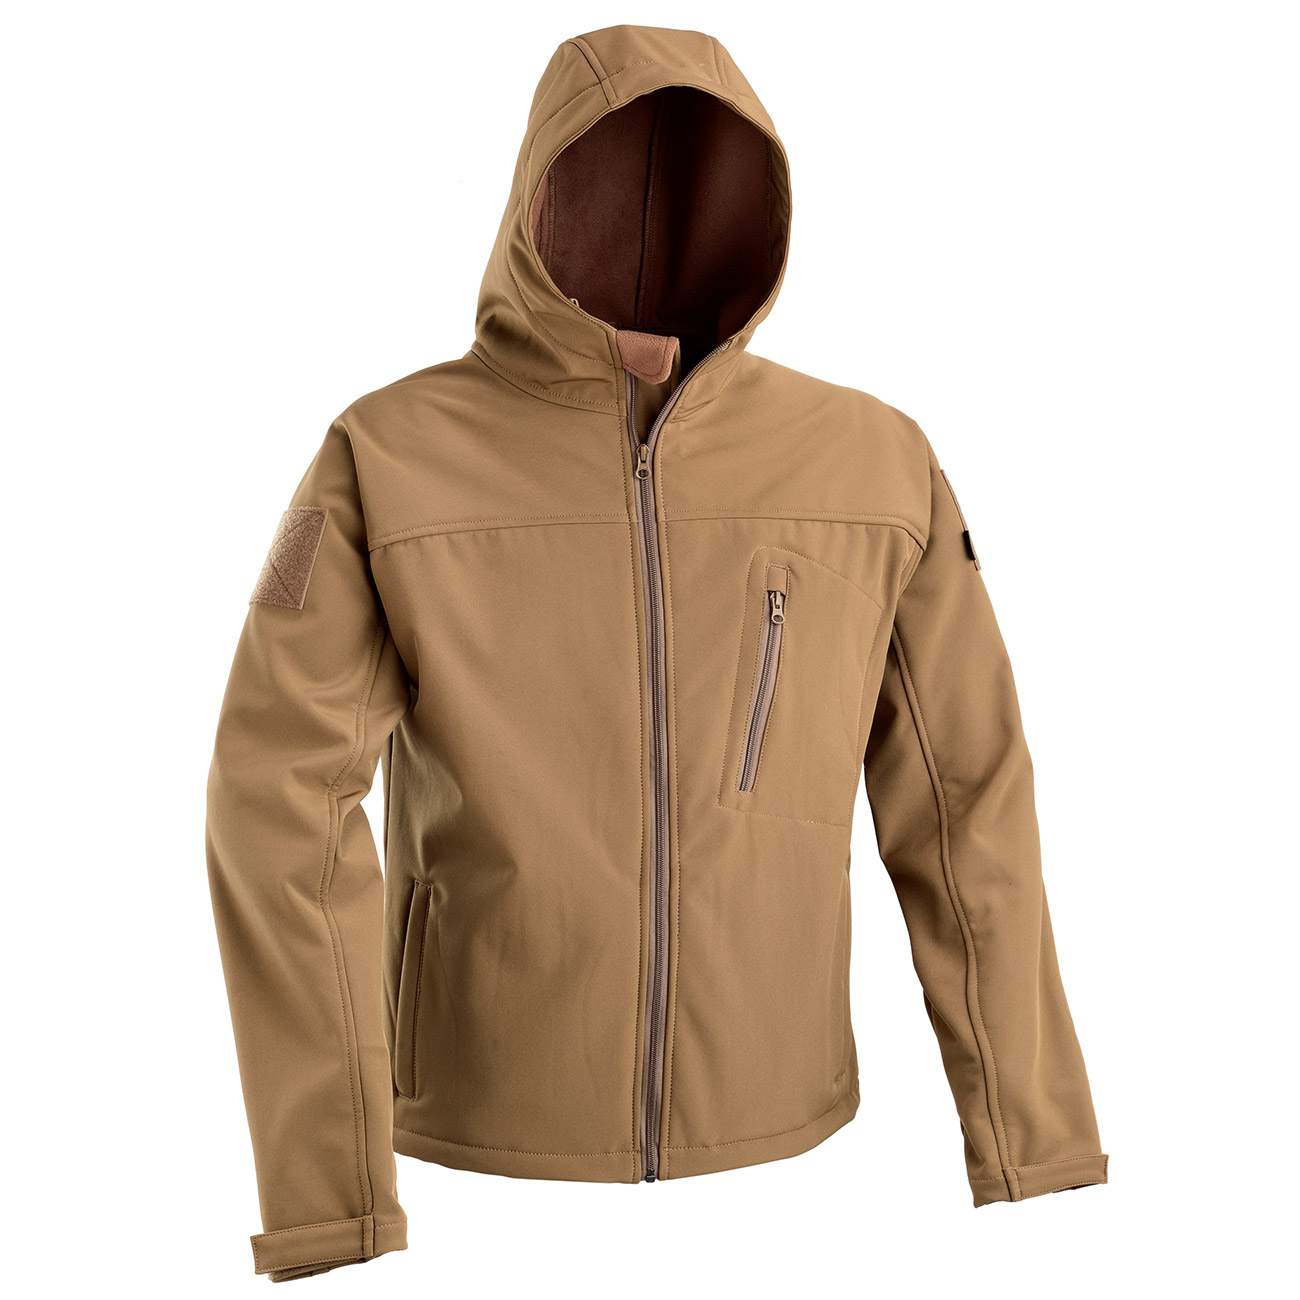 Defcon 5 Softshelljacke coyote tan 0